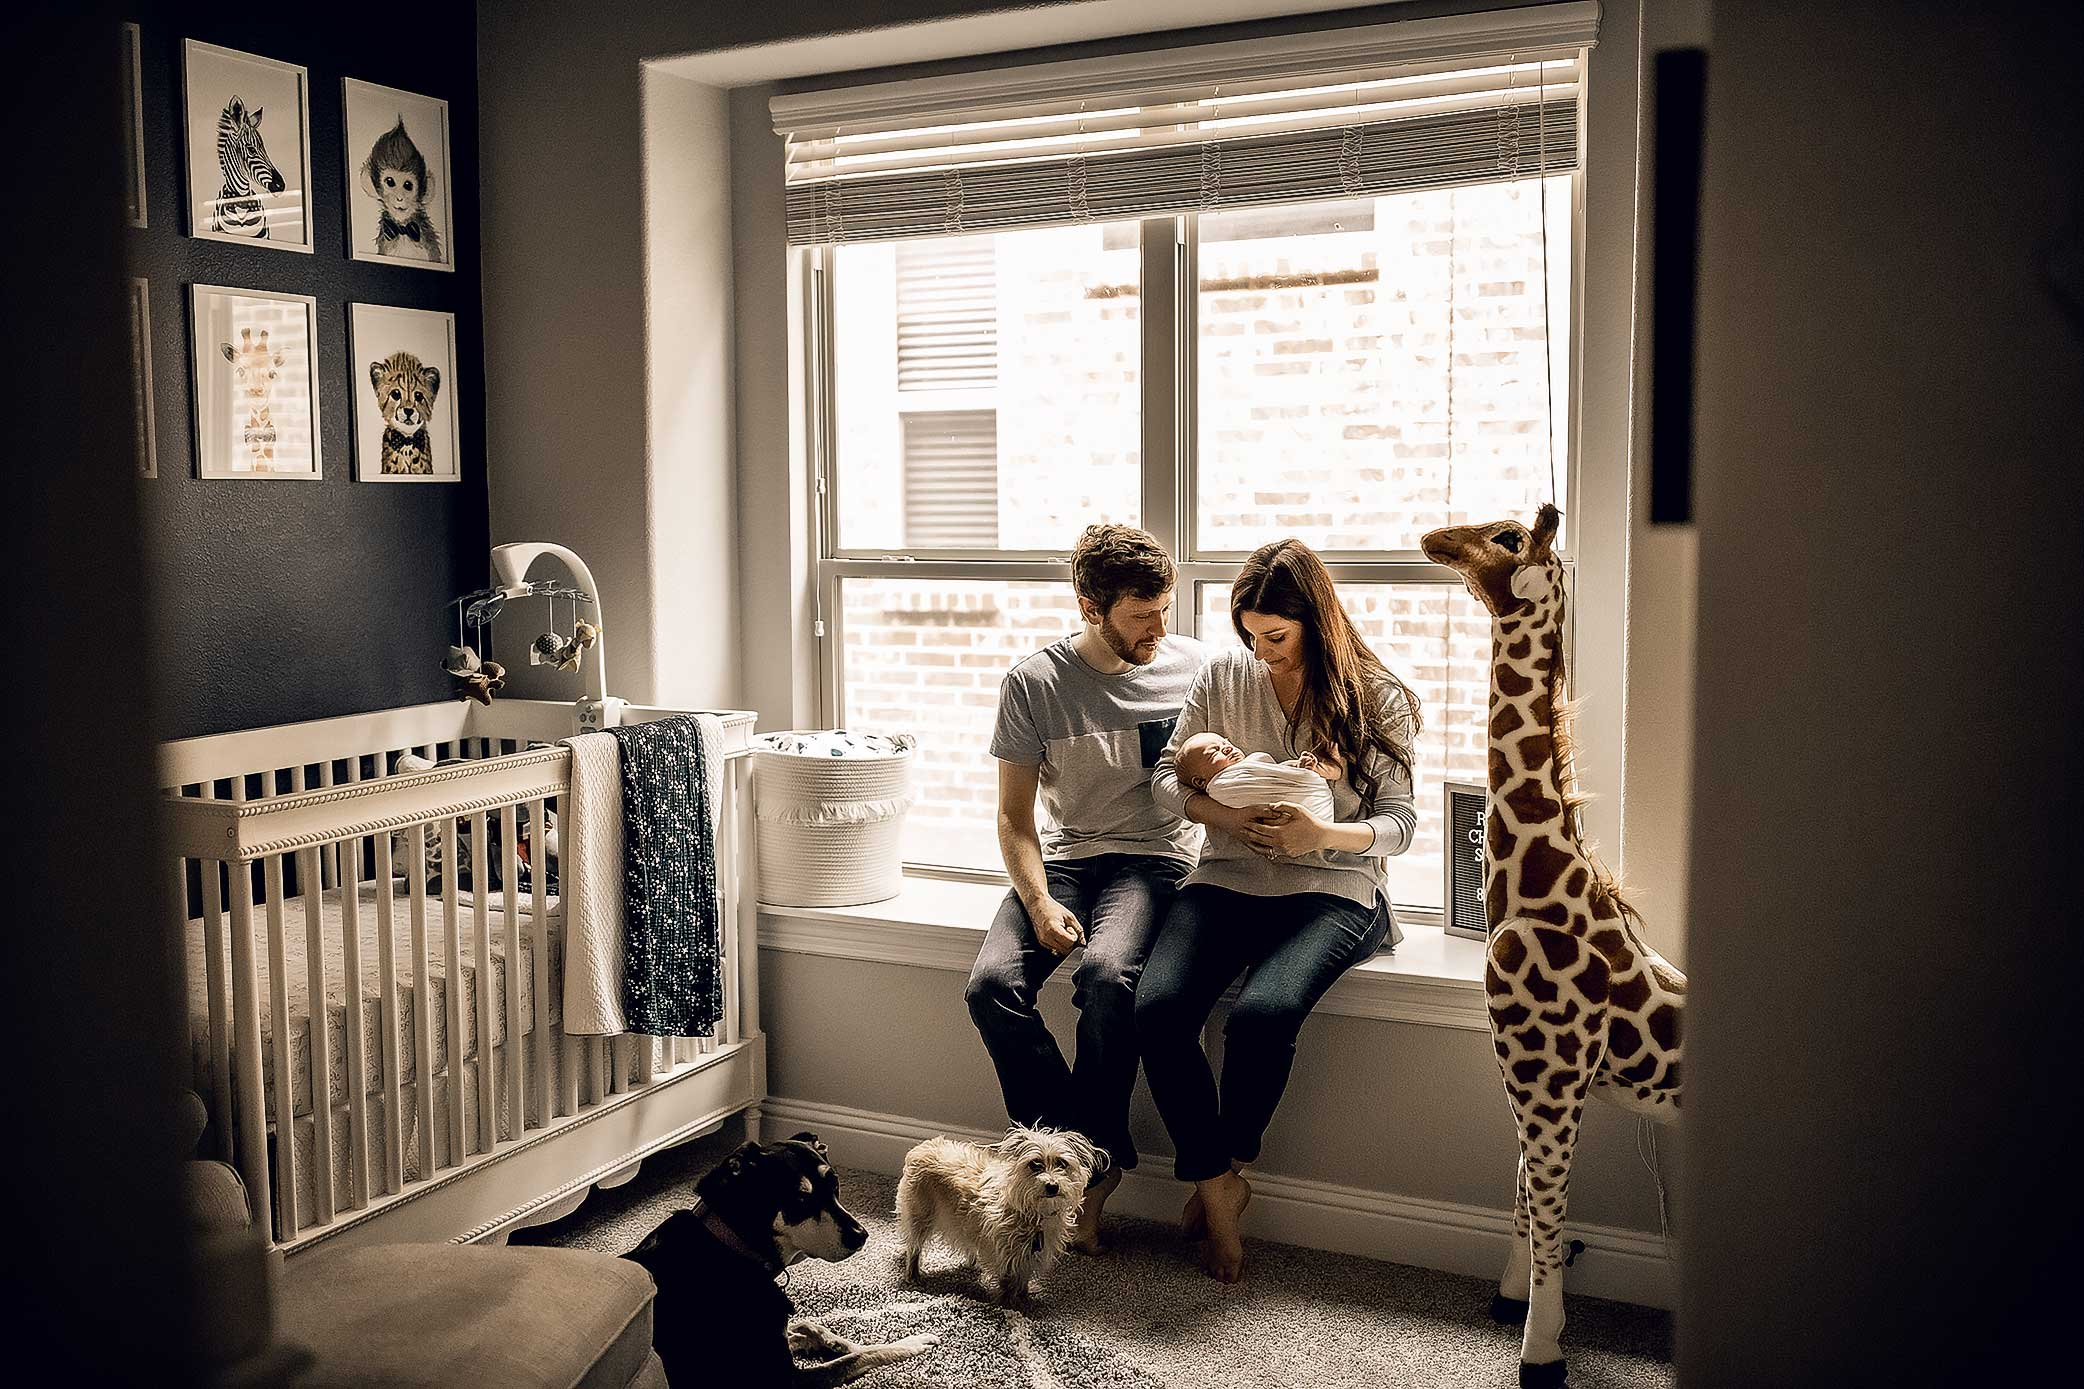 shelby-schiller-photography-in-home-lifestyle-newborn-in-neutral-nursery.jpg